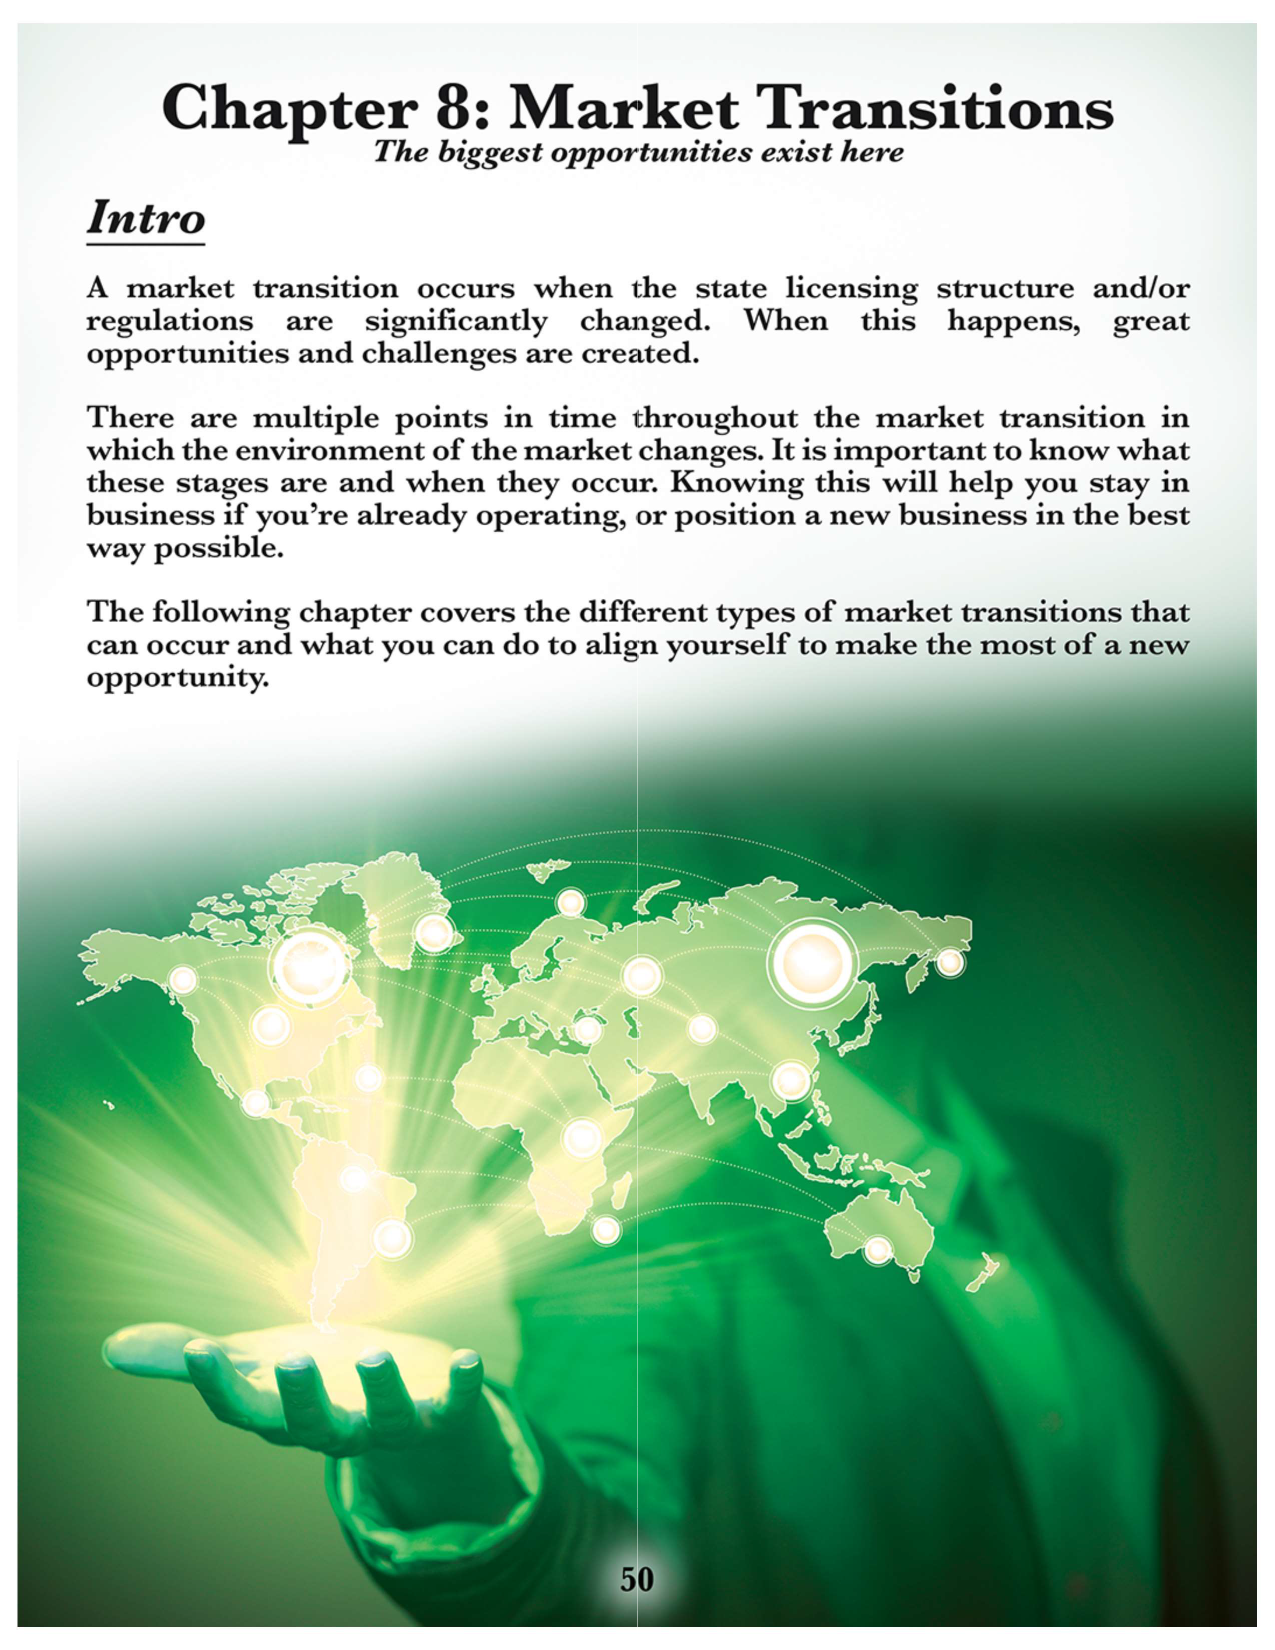 eBook Chapter 8: Cannabis Market Transitions pg 1